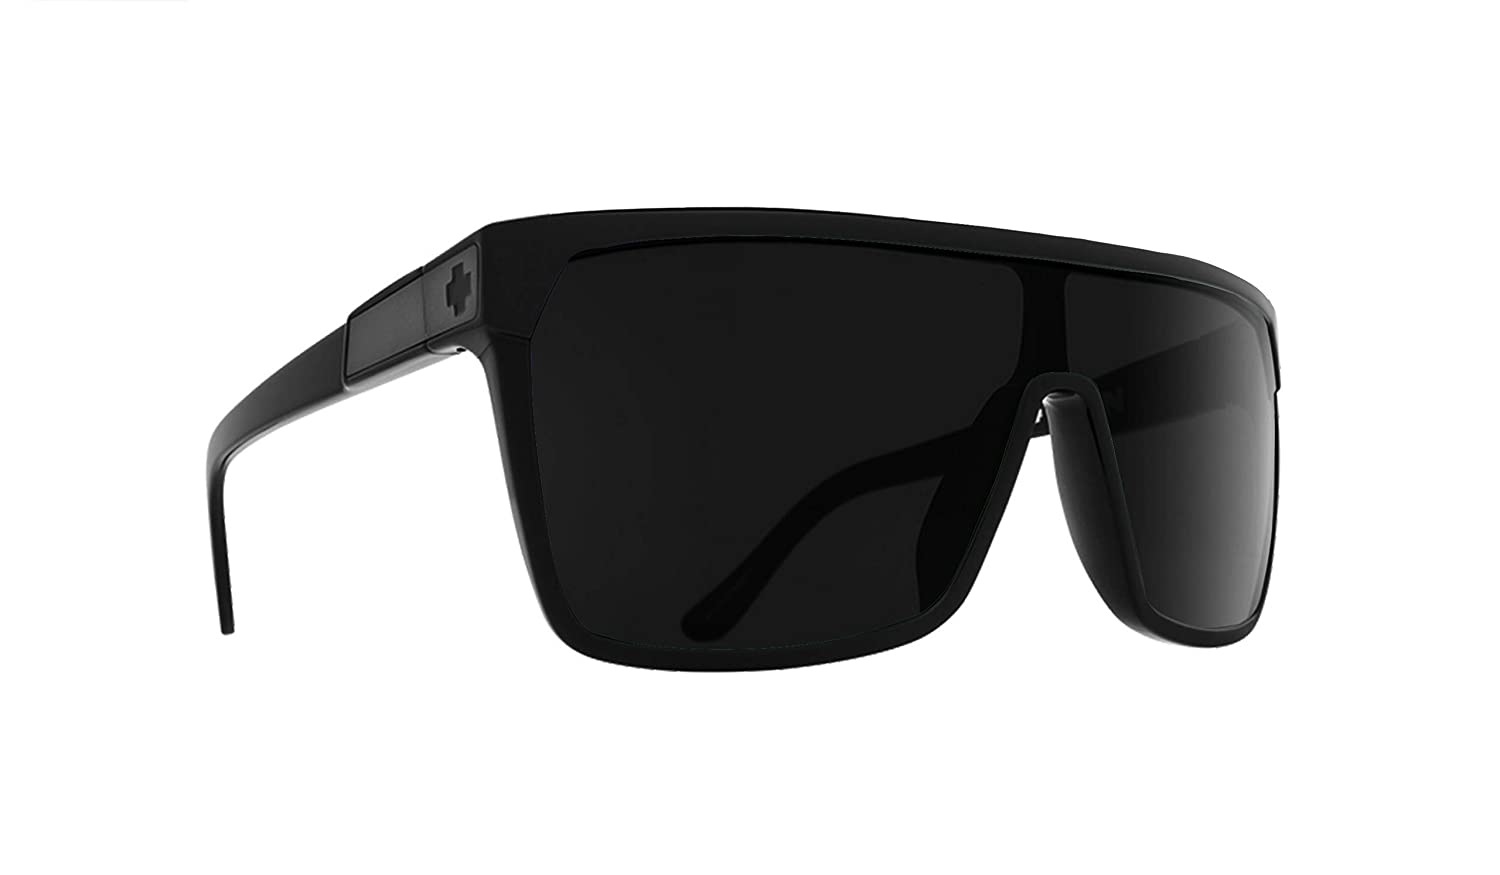 Amazon.com: Mejor Seek lentes de repuesto para Spy Optics ...